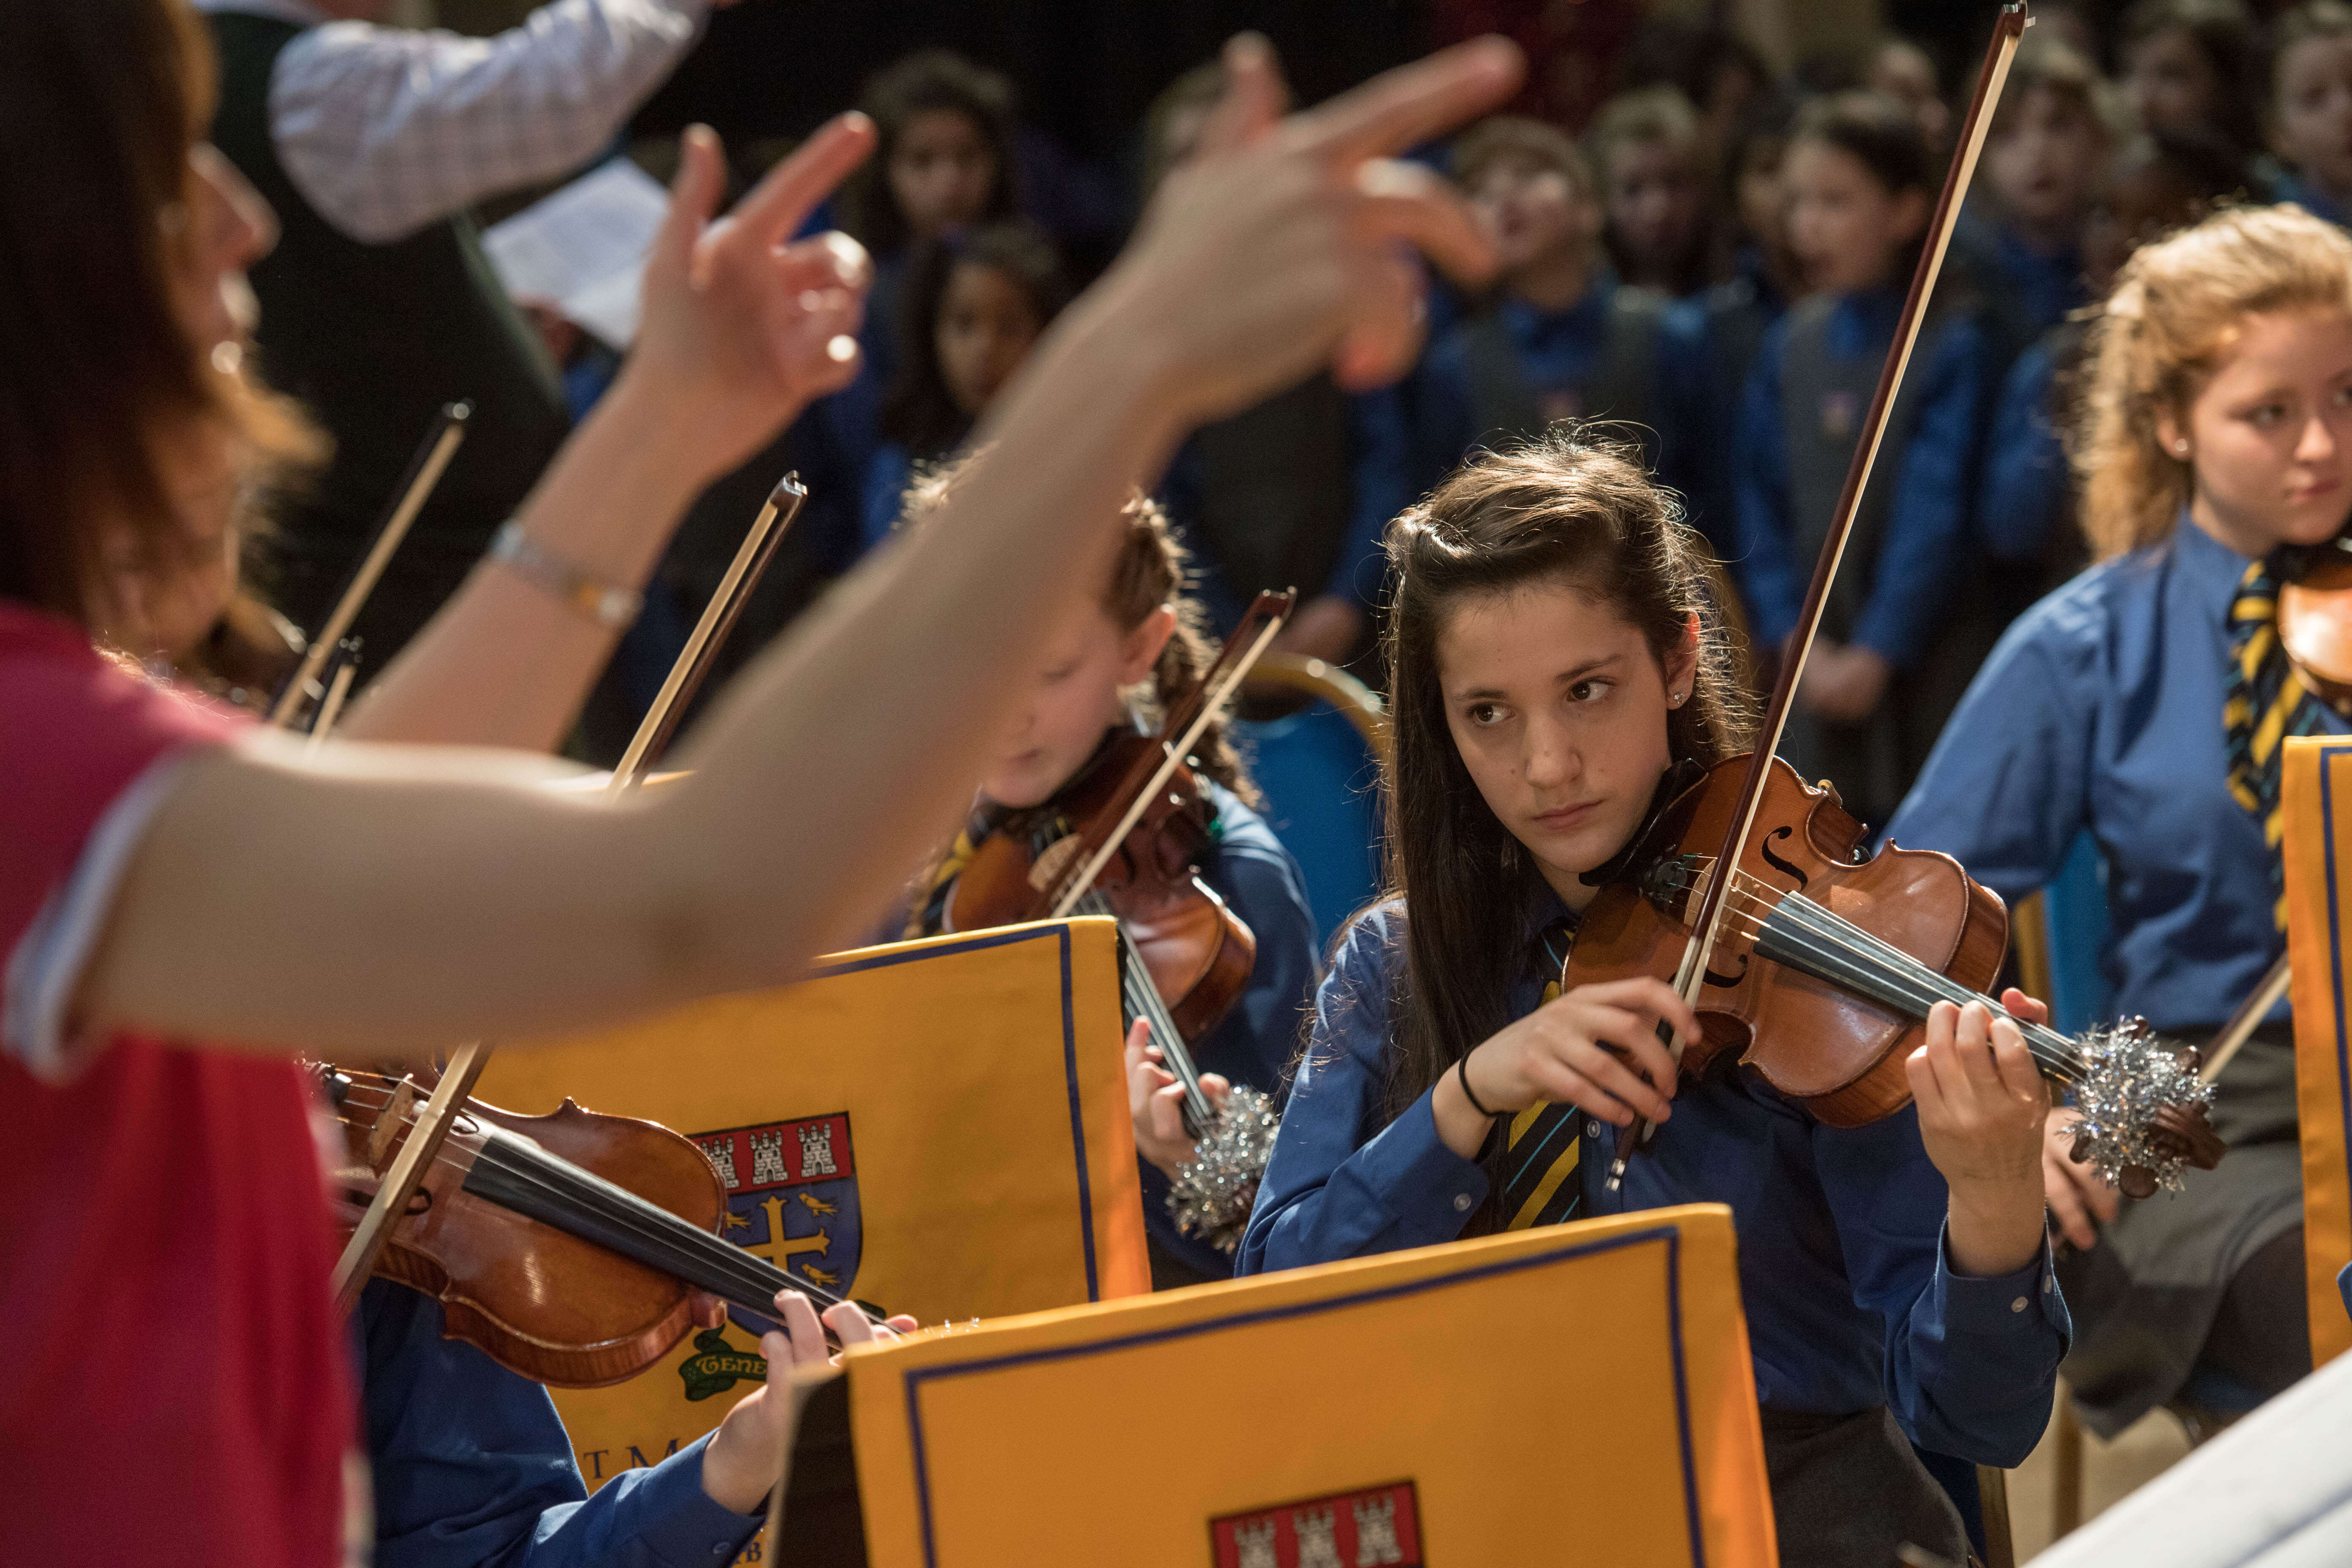 How does St Margaret's teach girls to read music?